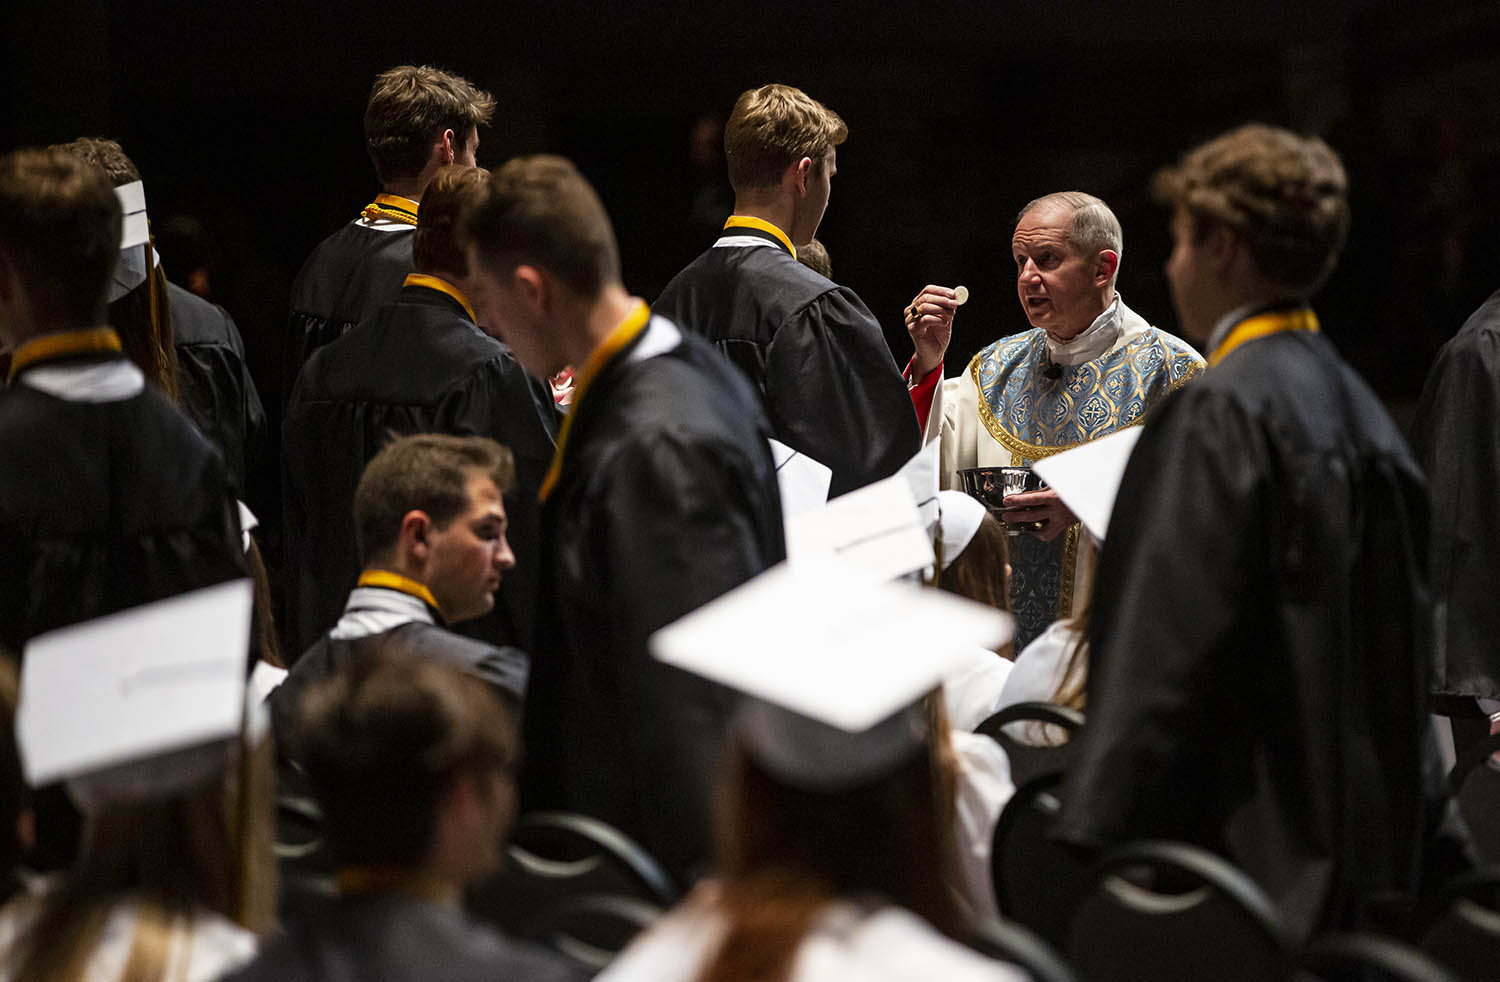 Bishop Thomas John Paprocki delivers communion as part of the graduation mass during the Sacred Heart-Griffin 2019 Graduation Ceremony at the Sangamon Auditorium on the campus of the University of Illinois Springfield, Sunday, May 19, 2019, in Springfield, Ill. [Justin L. Fowler/The State Journal-Register]